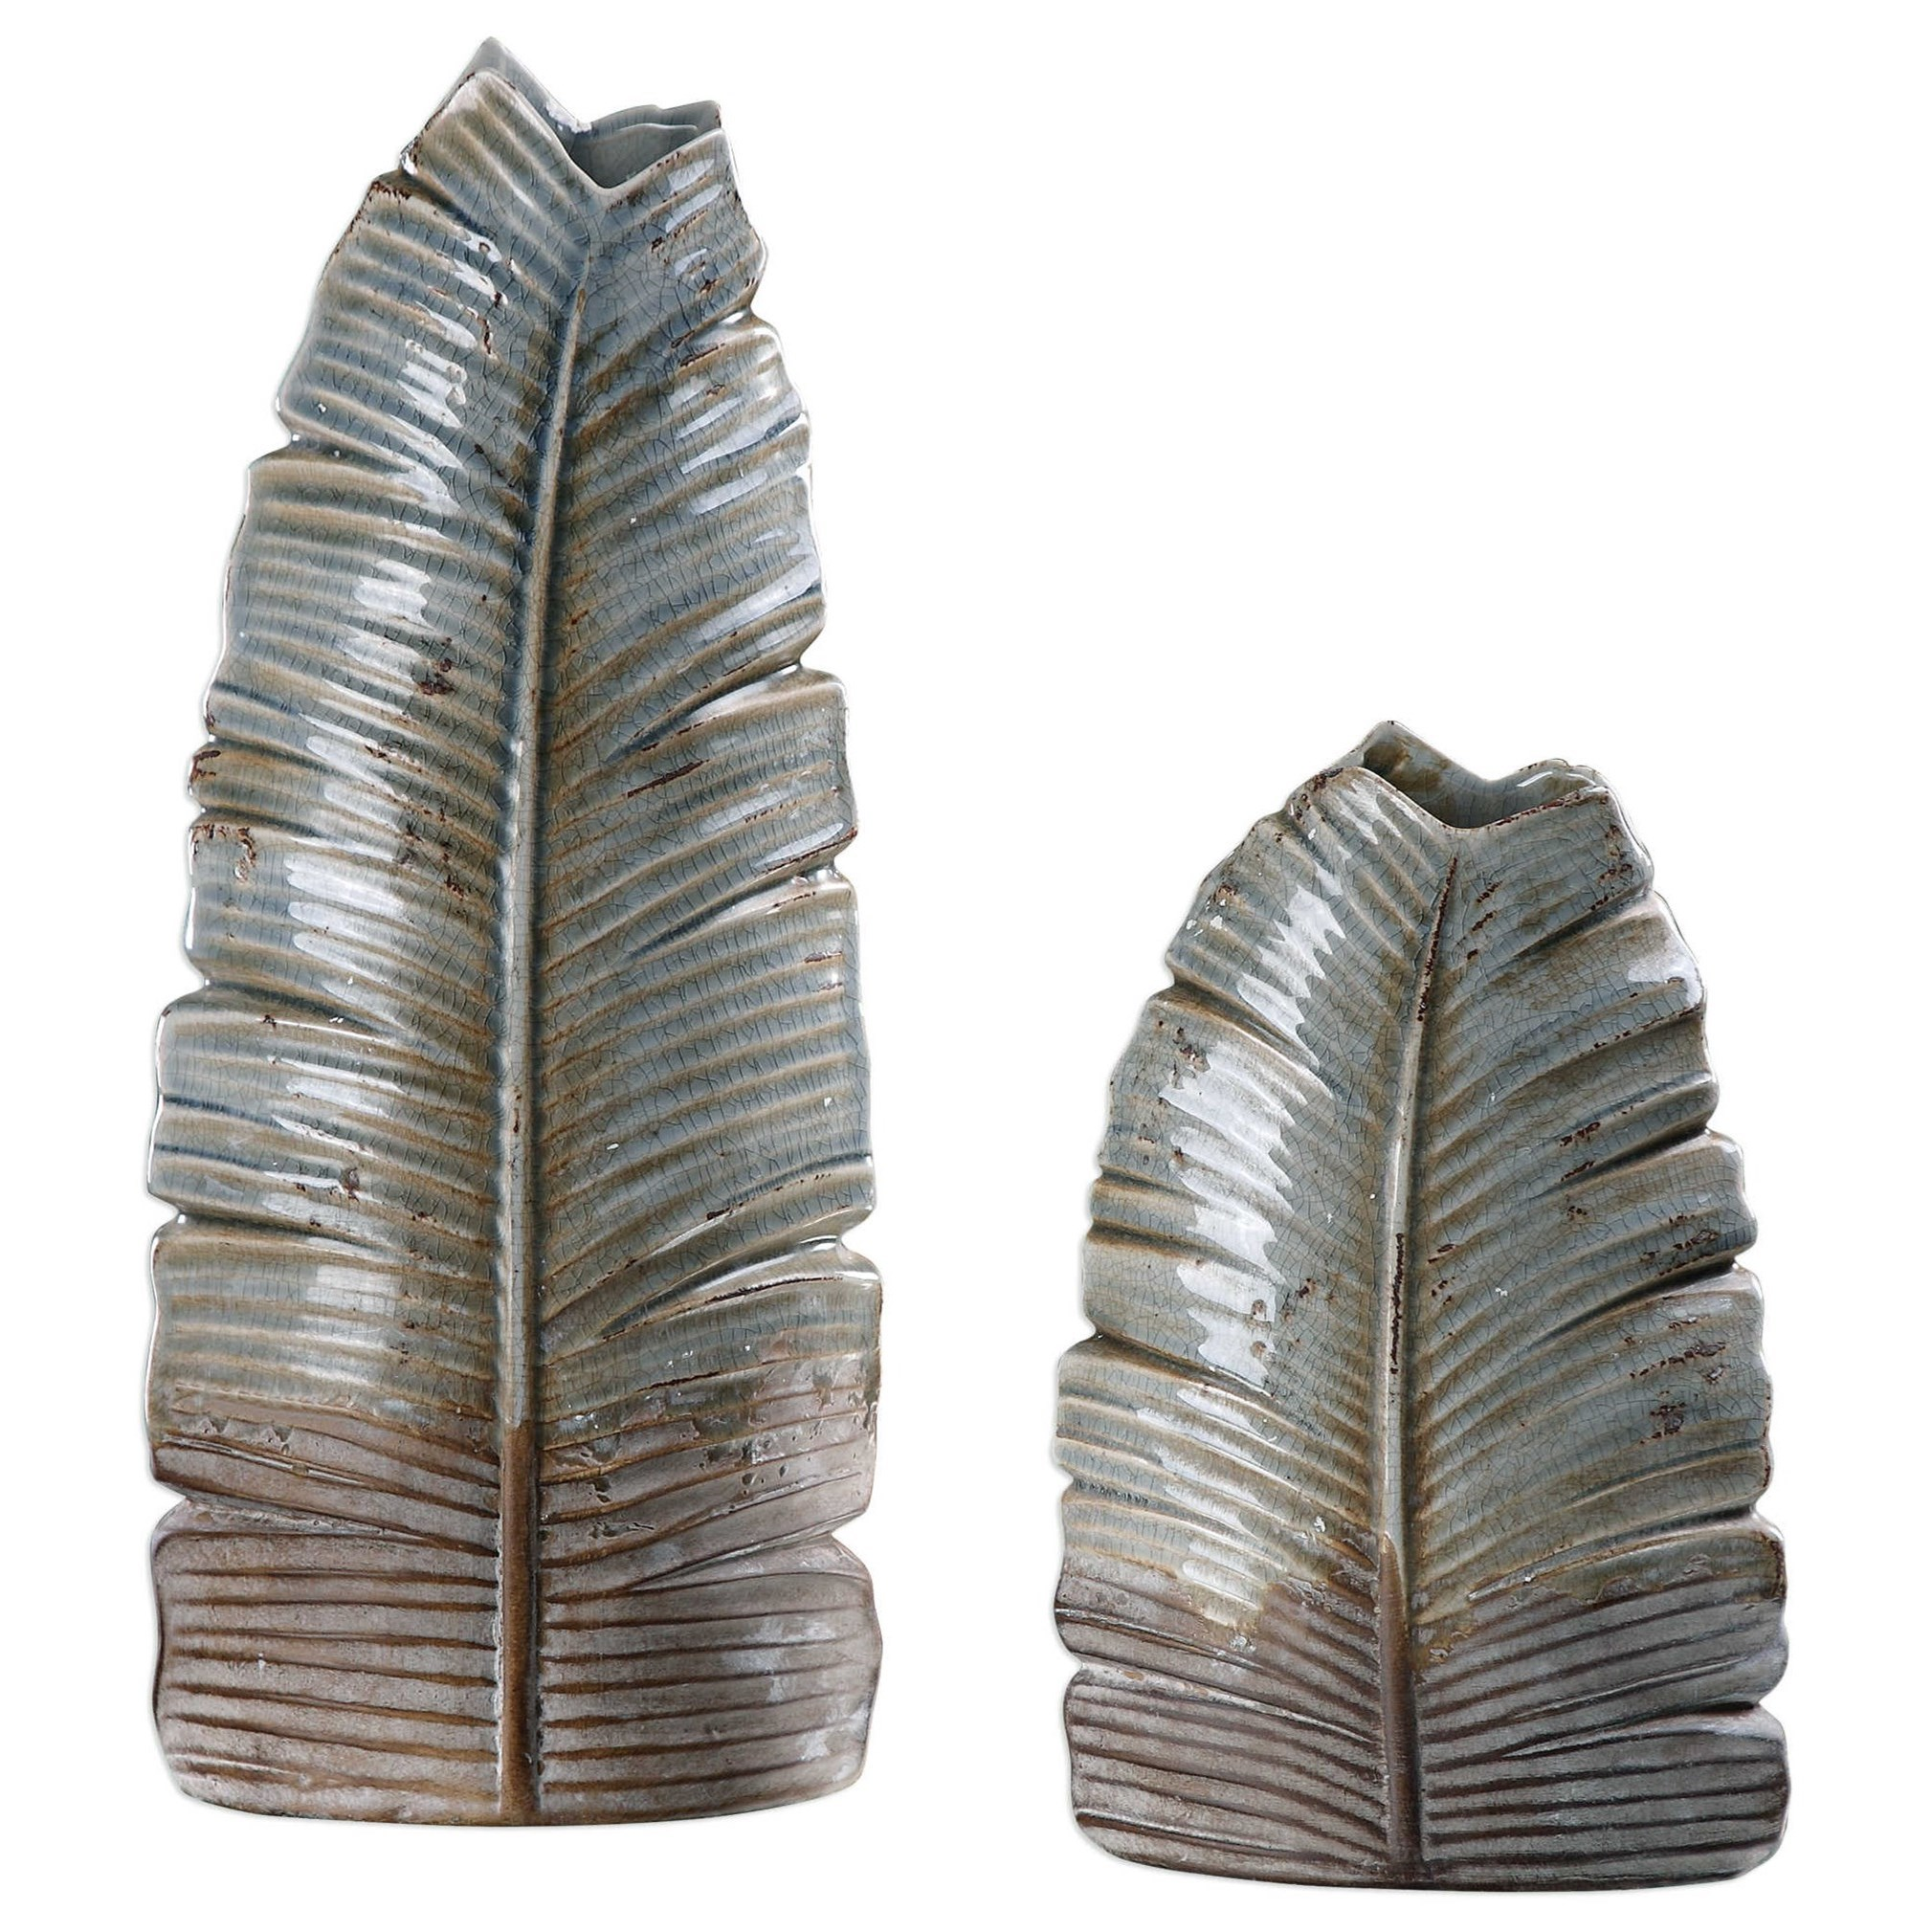 Accessories - Vases and Urns Invano Leaf Vases (Set of 2) by Uttermost at Wayside Furniture